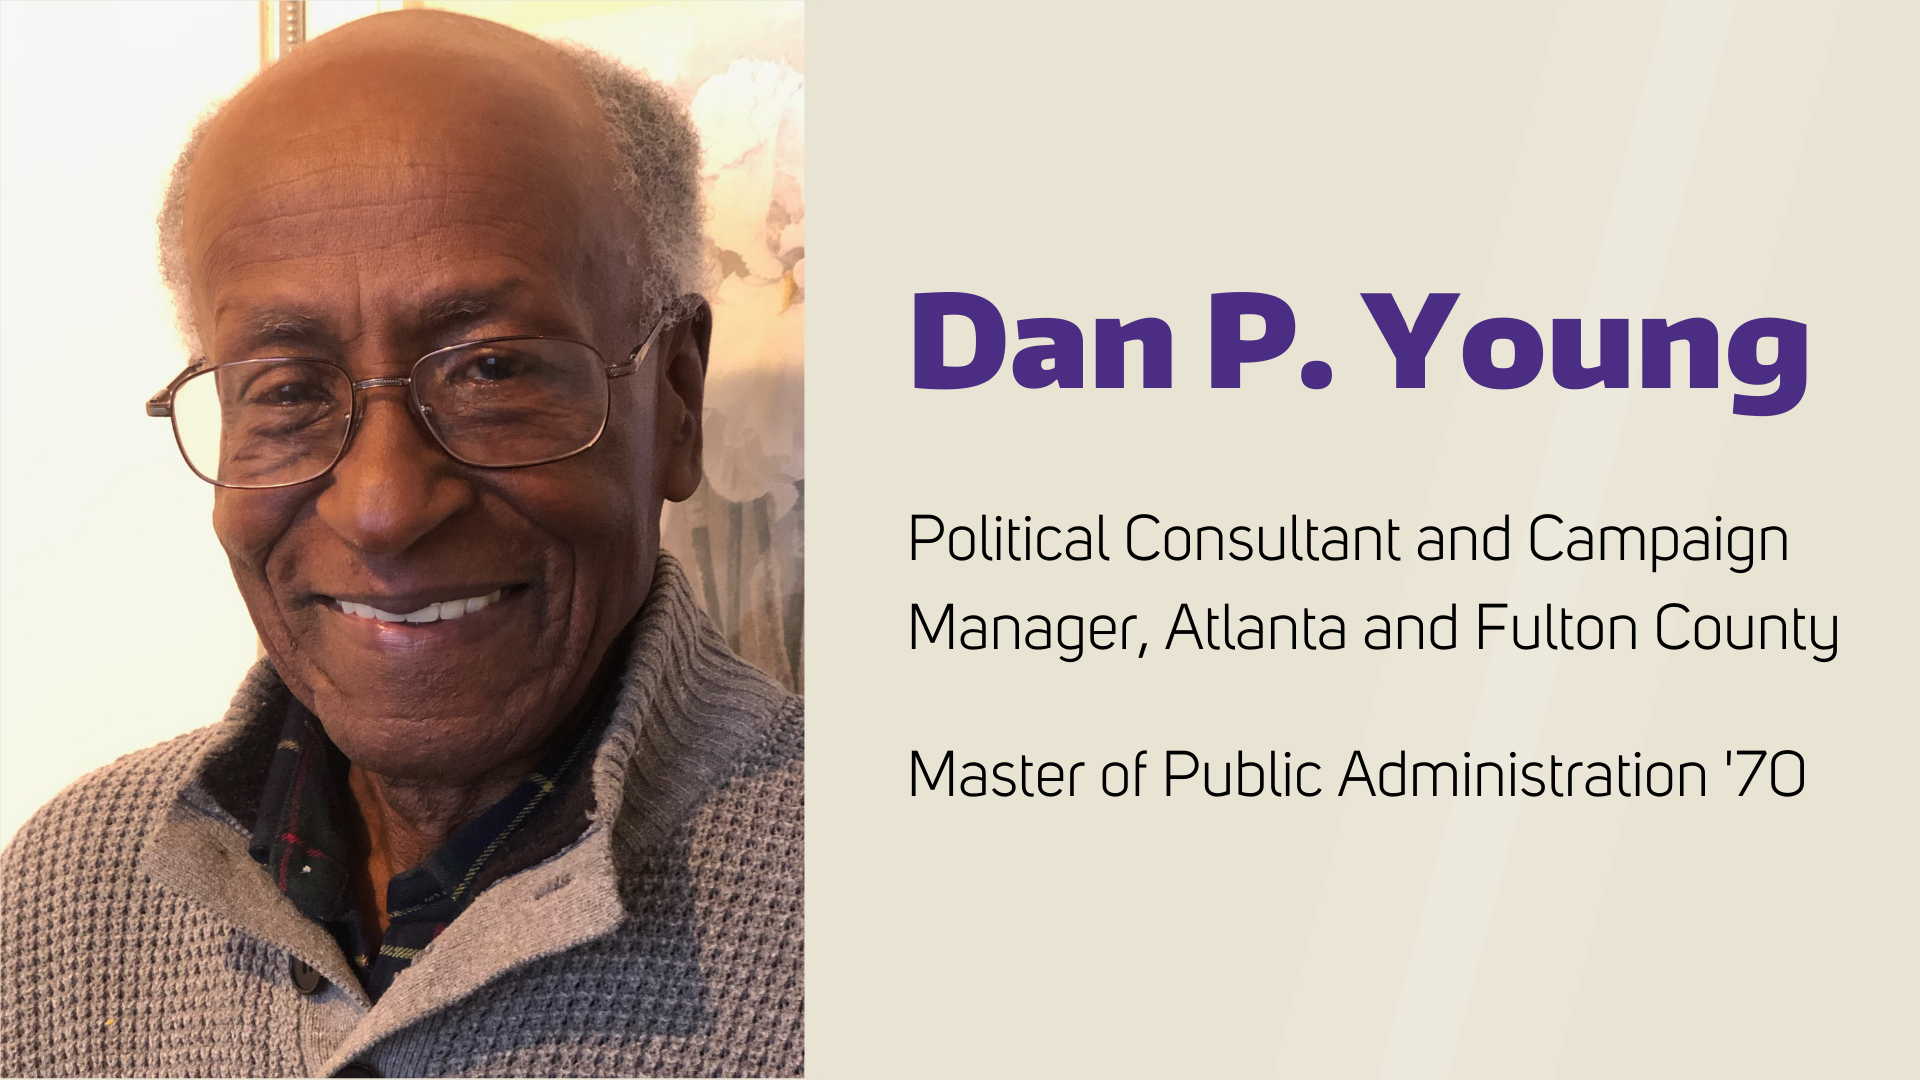 Dan P. Young - Political Consultant and Campaign Manager, Atlanta and Fulton County, Master of Public Administration '70